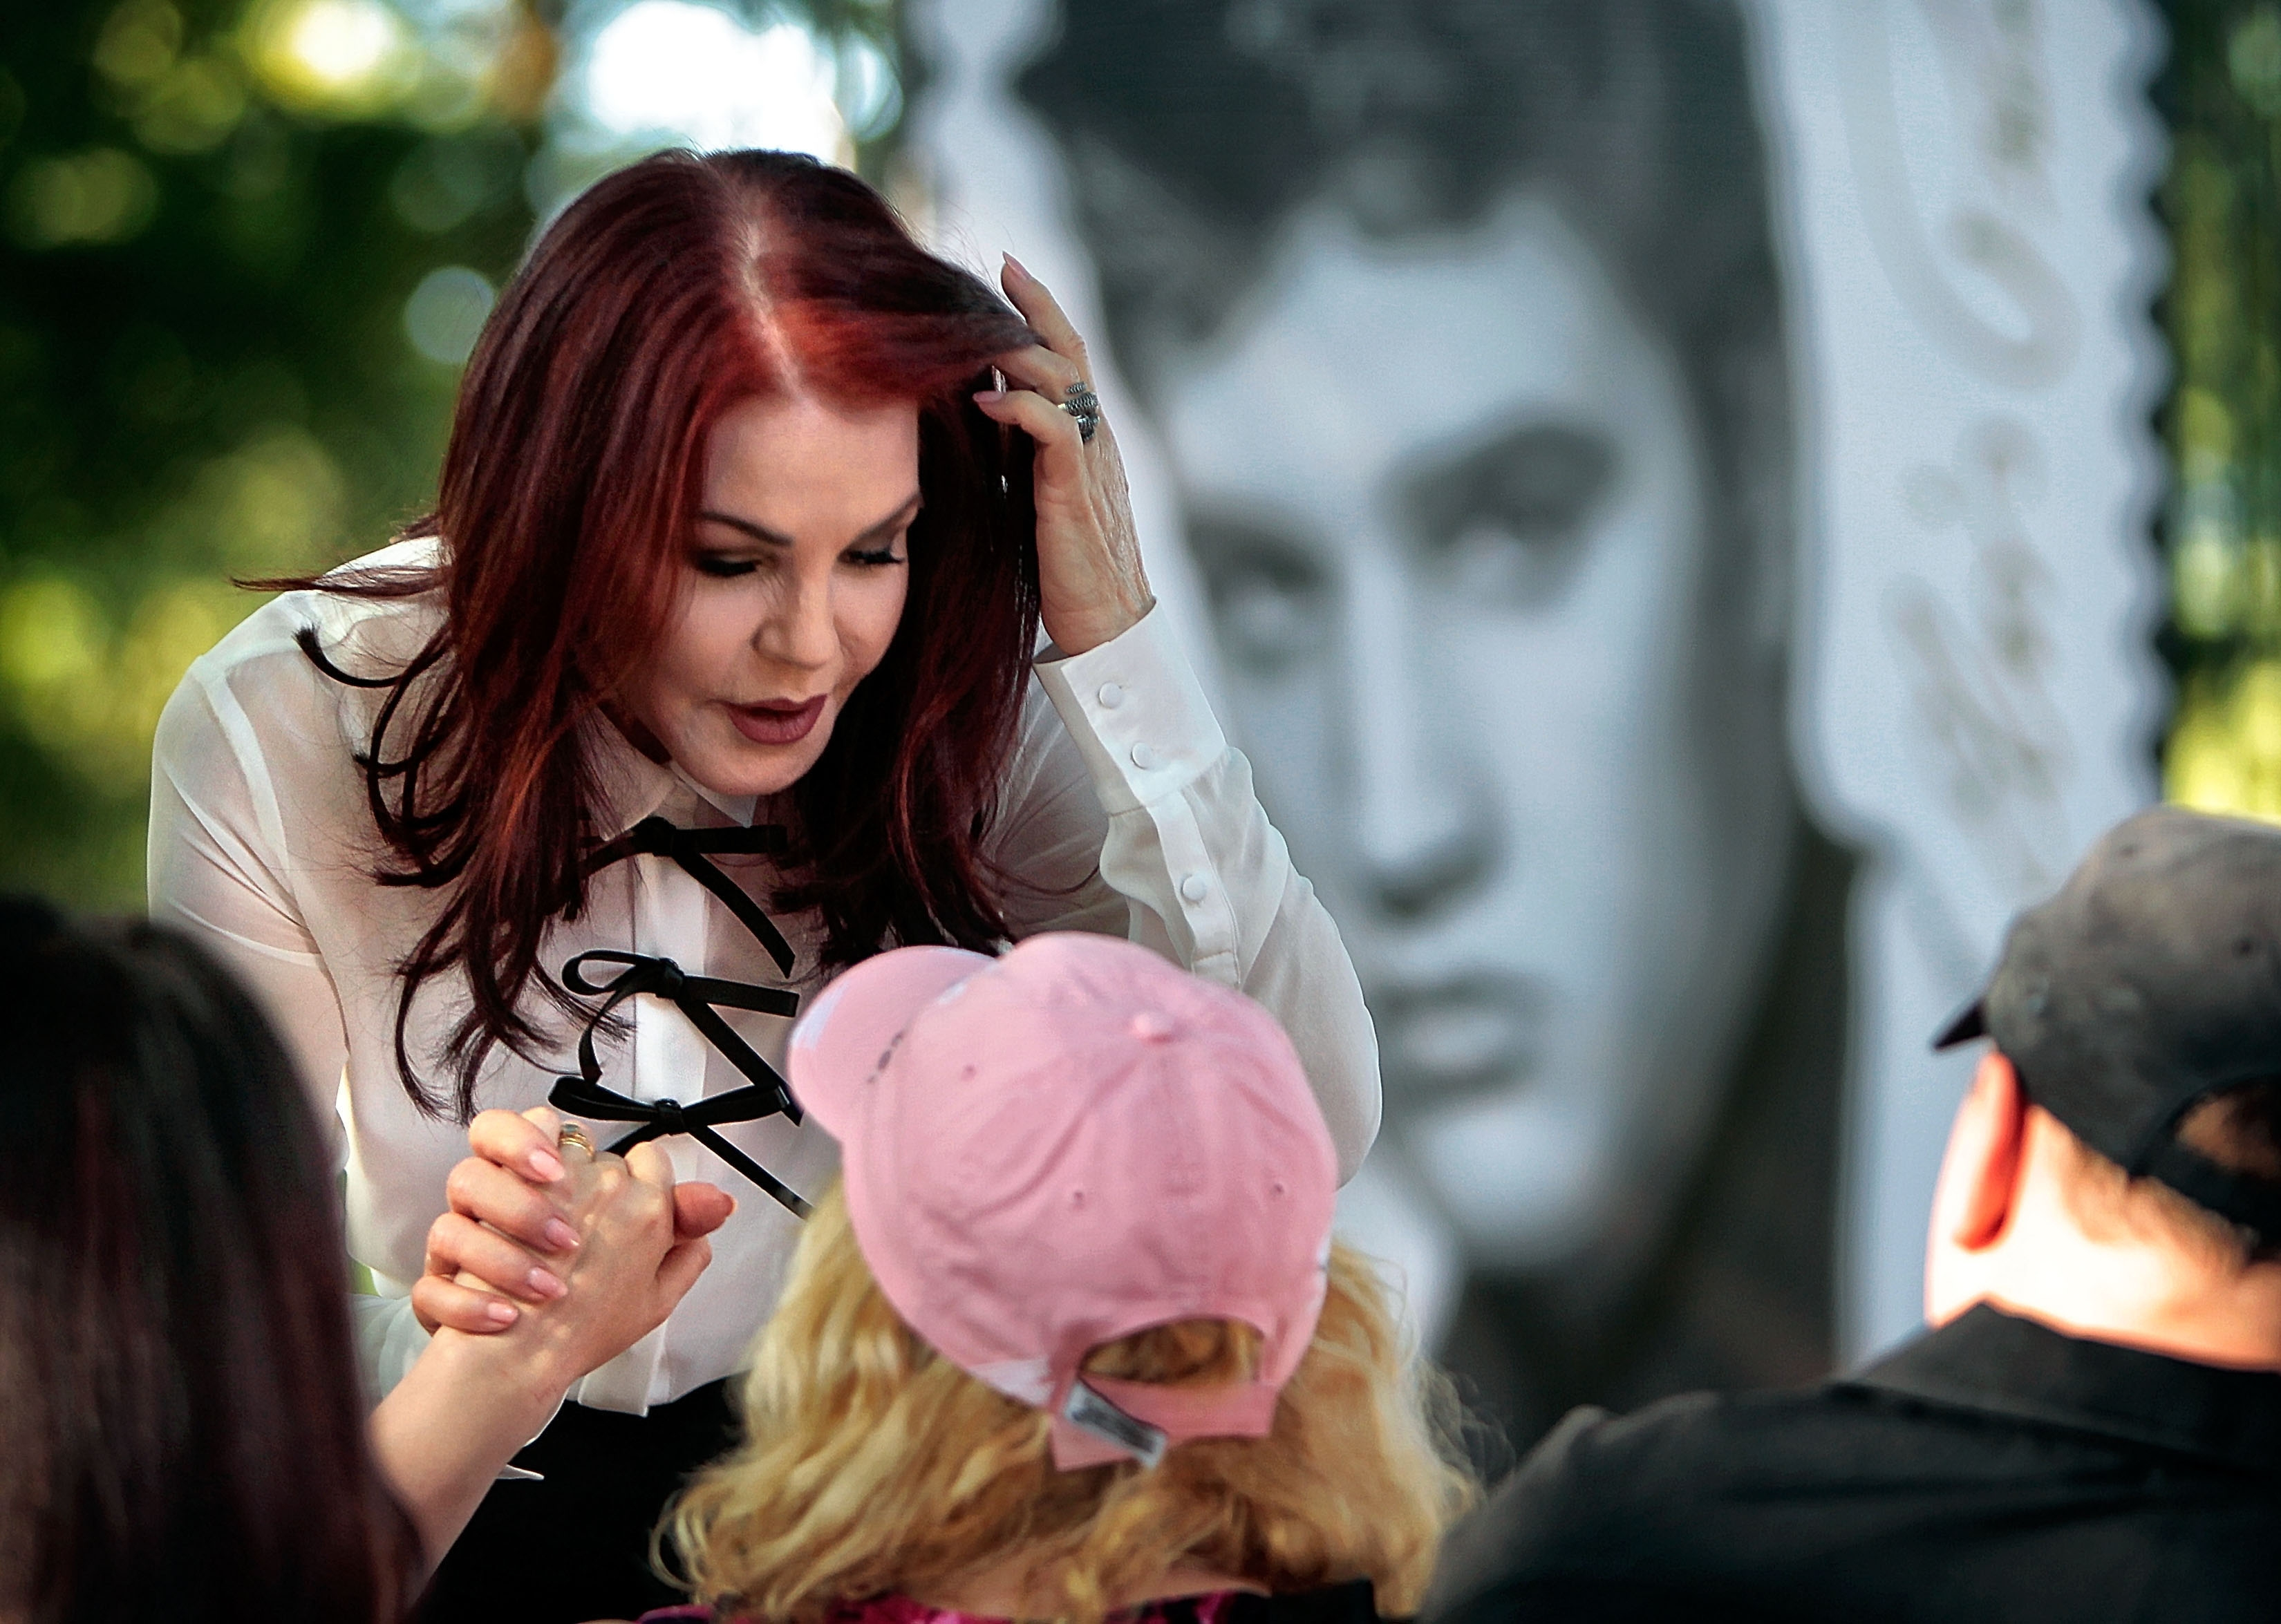 Priscilla Presley greets enthusiastic Elvis fans and newlyweds Dawn and Phillip Pratt after a dedication ceremony for the new Elvis Forever stamp, the second postal stamp for the music icon, Wednesday, August 12, 2015, in Memphis. Mayor AC Wharton, Mayor Mark Luttrell, and  Megan Brennan, the USPS Postmaster General, spoke at the unveiling. Photo: The Commercial Appeal/ AP